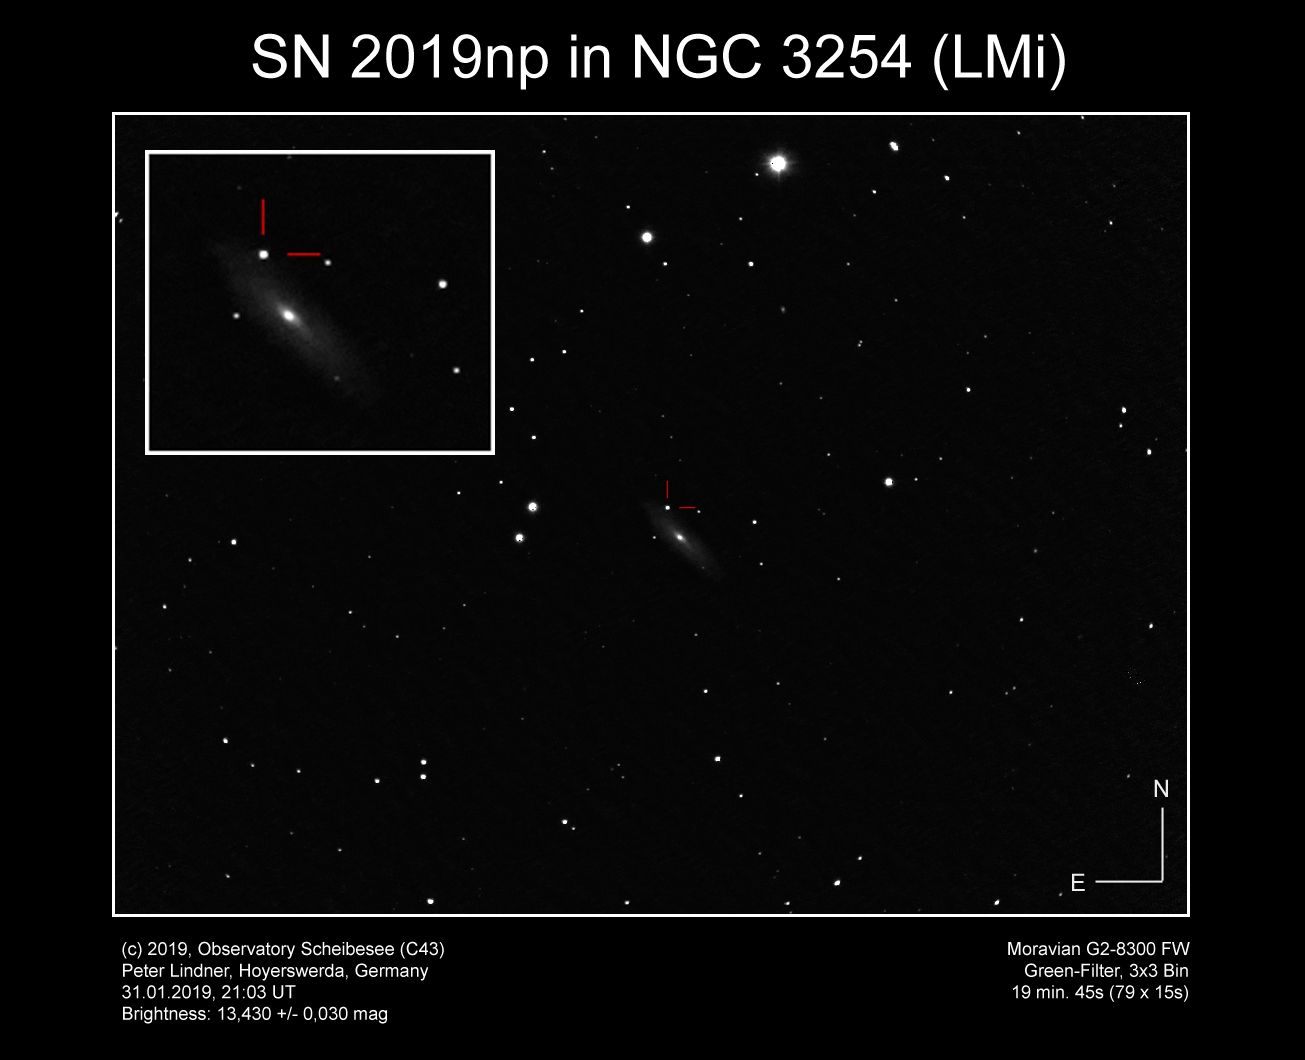 Supernova SN 2019np in NGC 3254 (Bild: Peter Lindner)